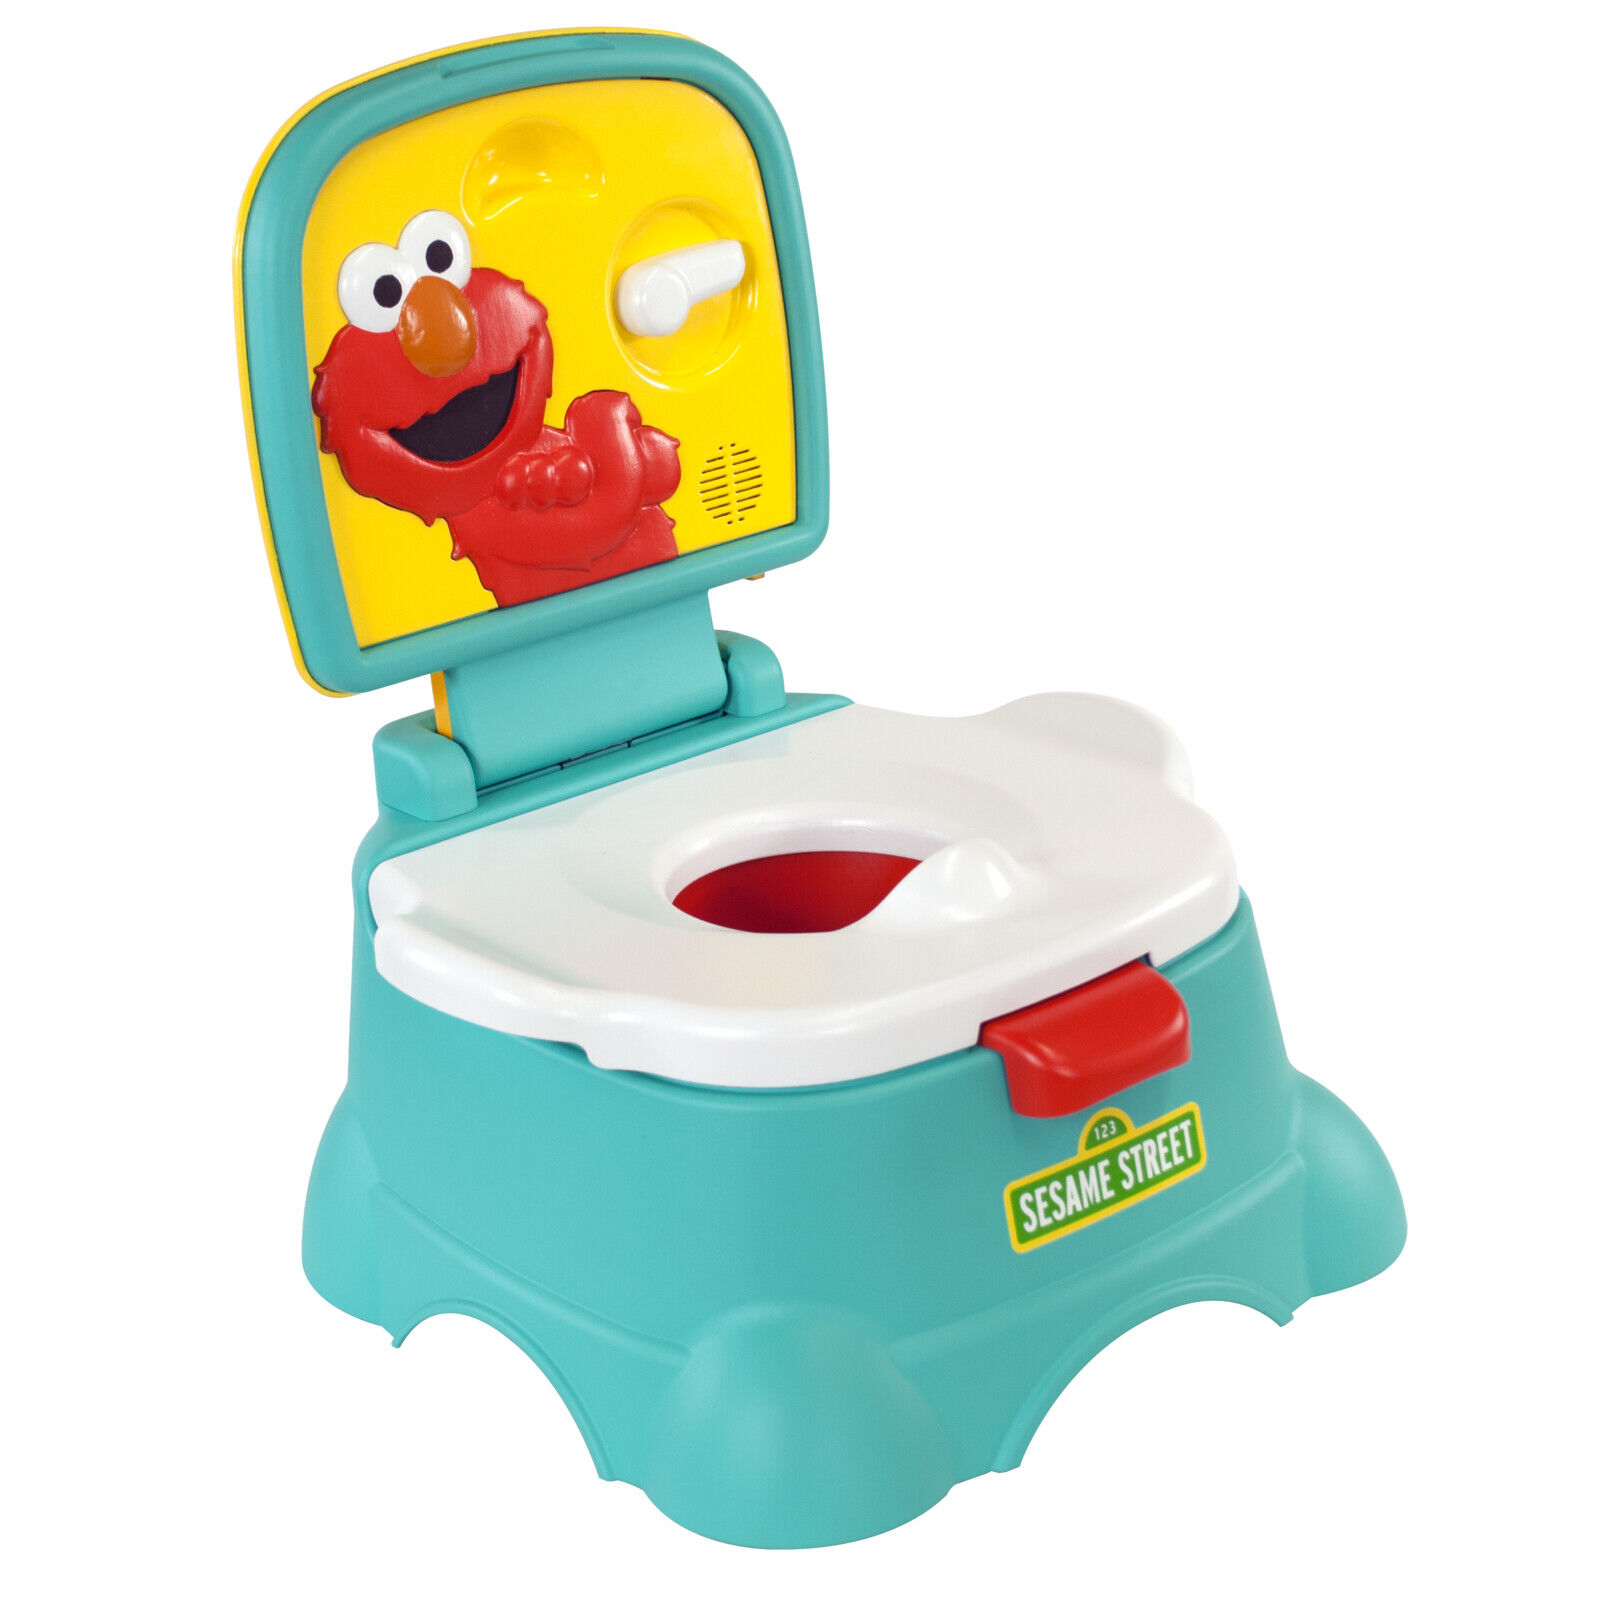 Sensational Details About Potty Trainer Chair Toddler Toilet Training Seat Step Stool Sesame Street Elmo Creativecarmelina Interior Chair Design Creativecarmelinacom